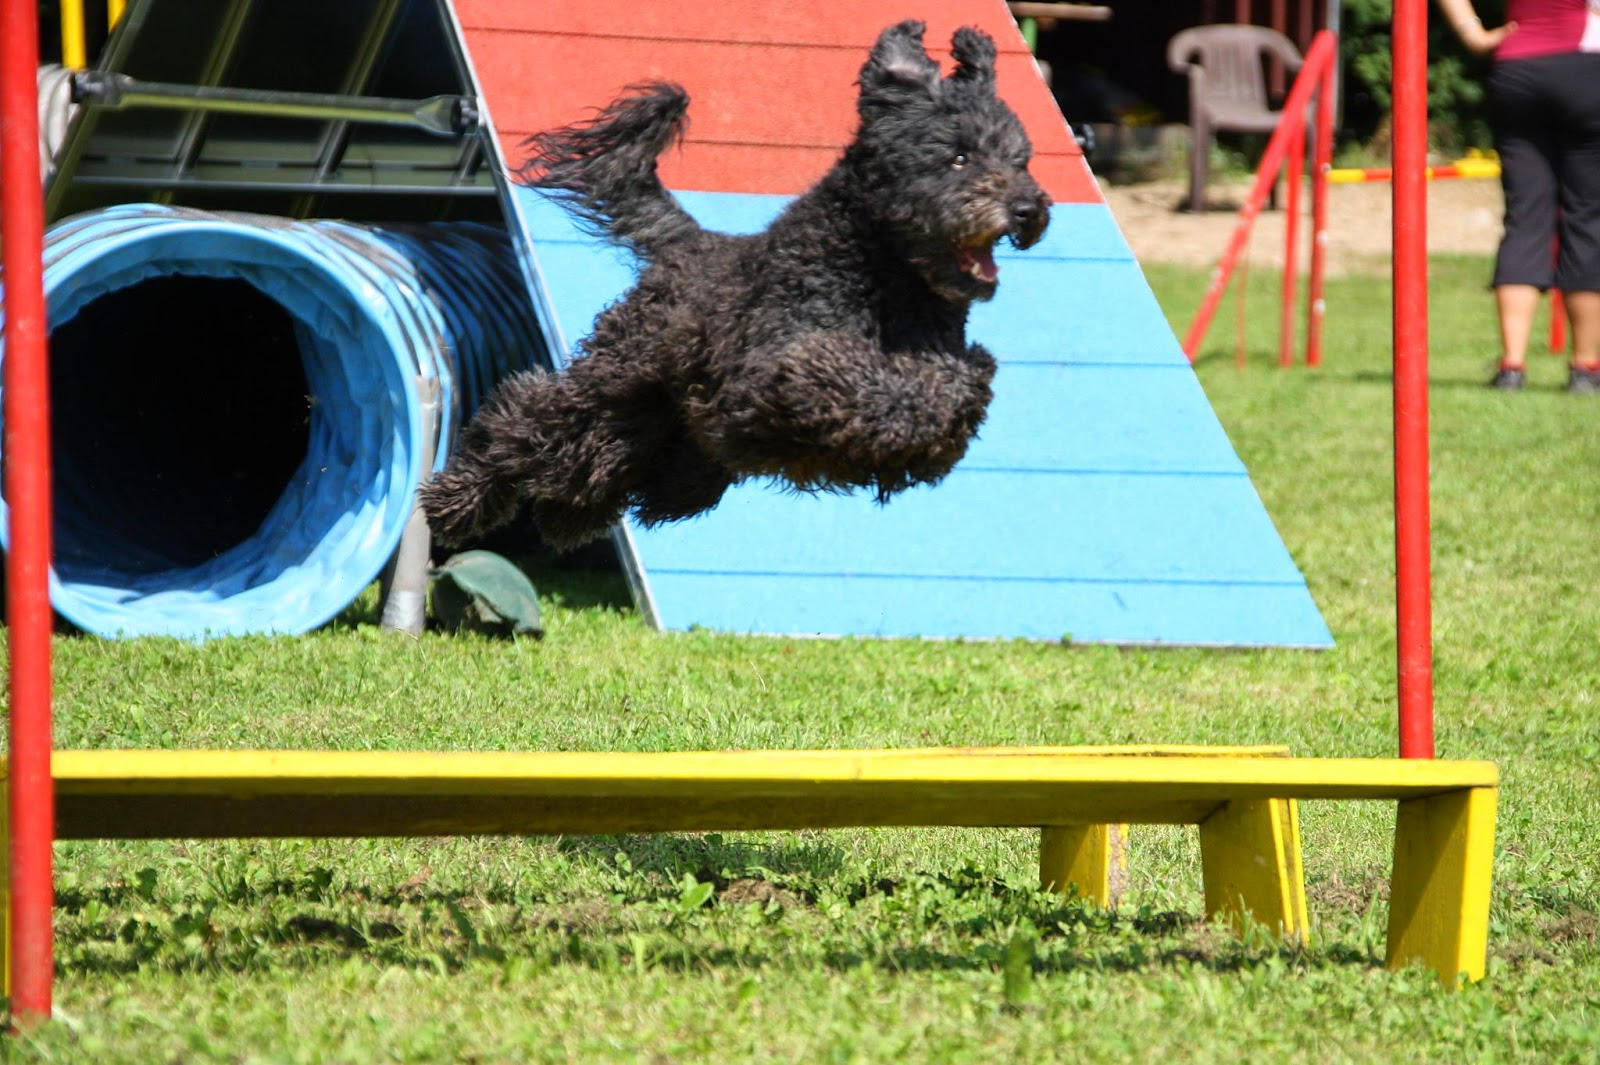 Dana (without kennel-name) from a breeder in Belgium. Her grand-father was Miklos, the most famous agility-pumi from Finland in the 1990s